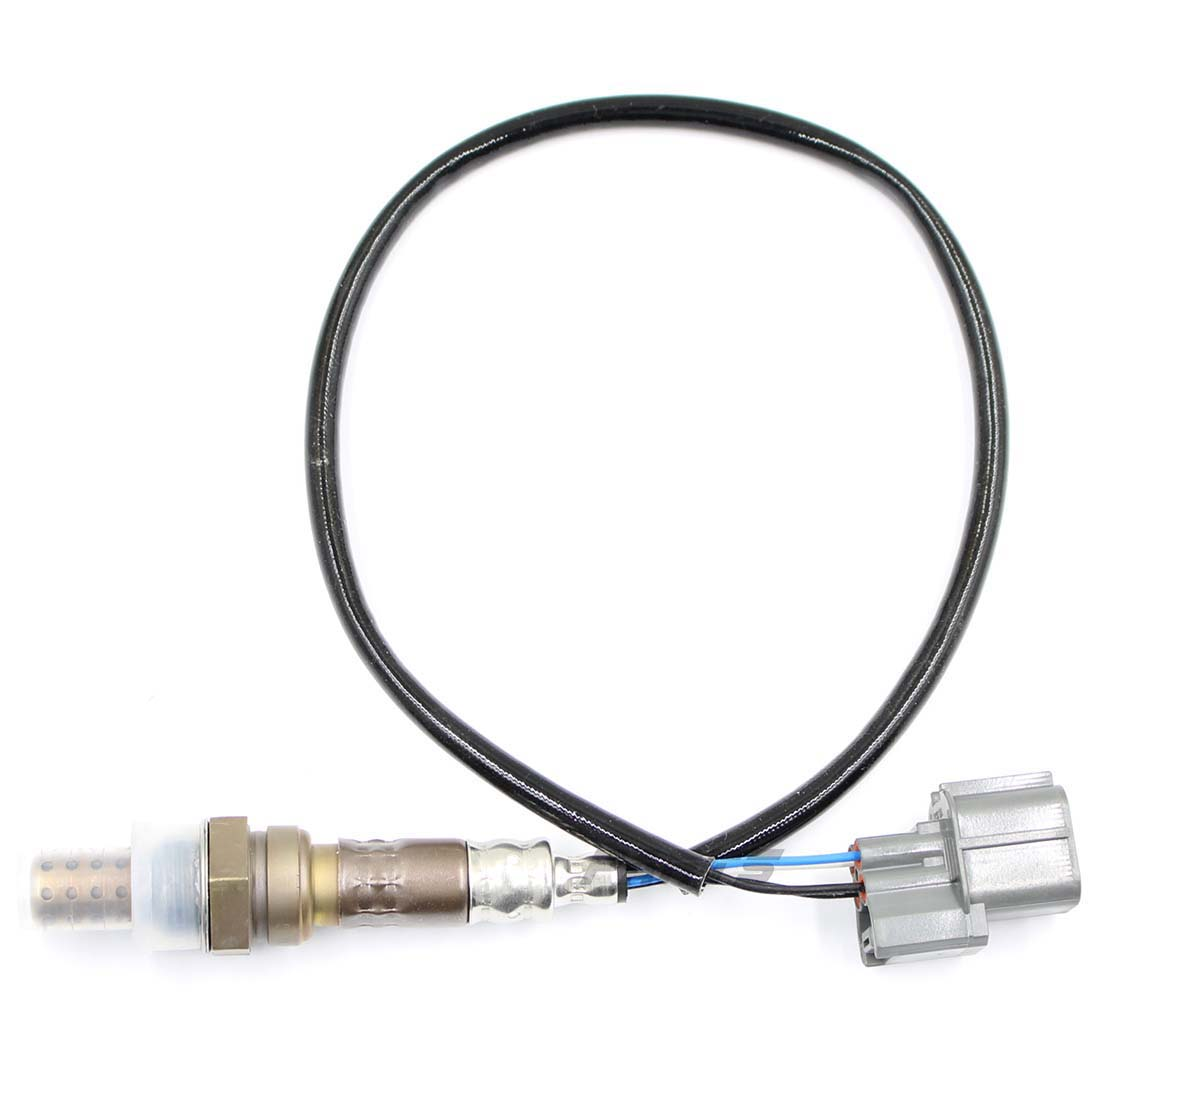 New O2 Oxygen Sensor Upstream Air Fuel Ratio For Honda Crv Civic Bf60 Wiring Diagram 756330909802